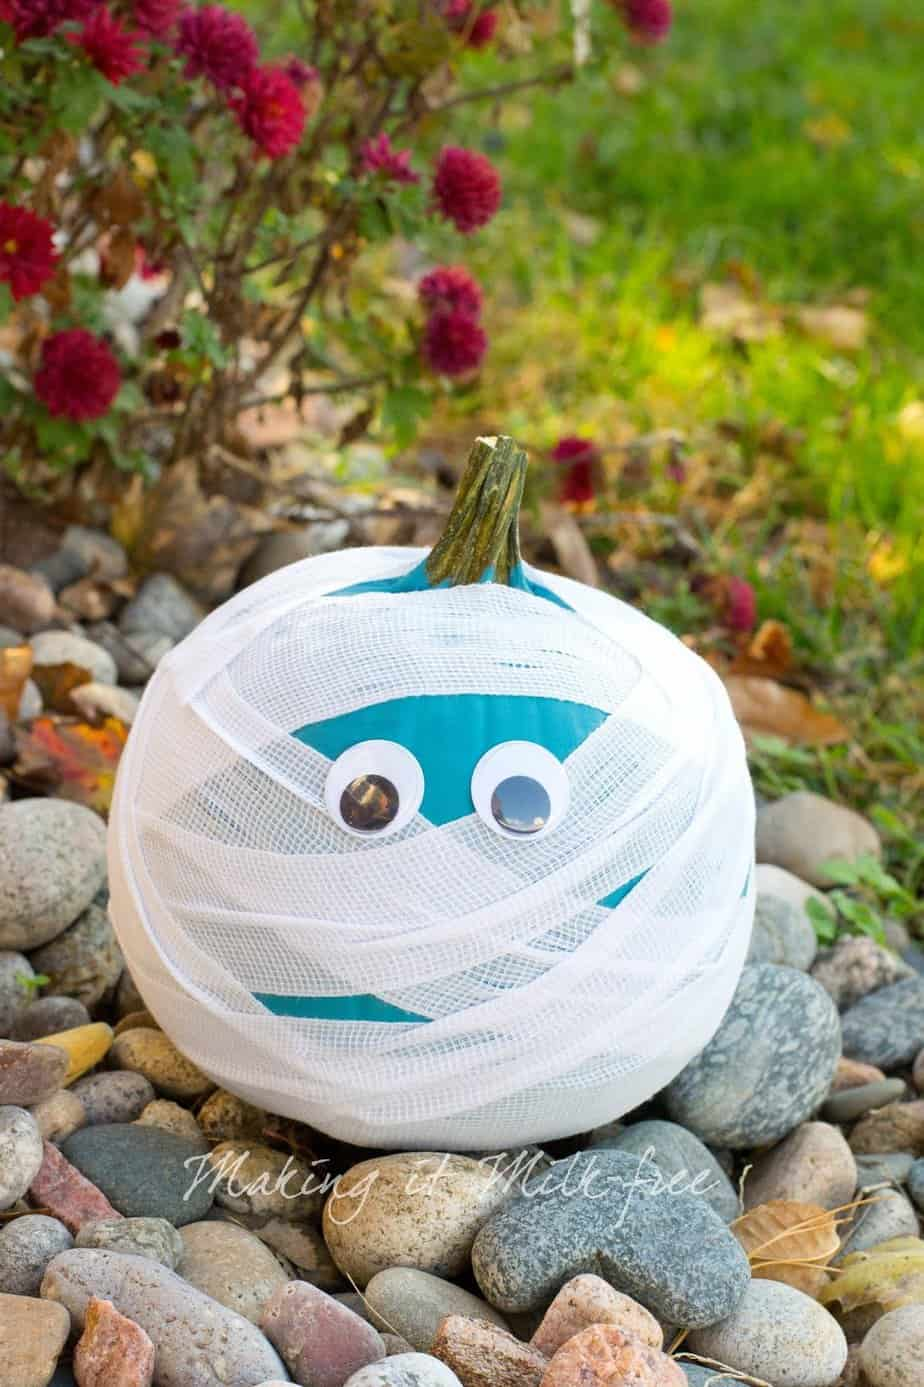 Teal Mummy Pumpkin for Halloween by Making it Milk-free